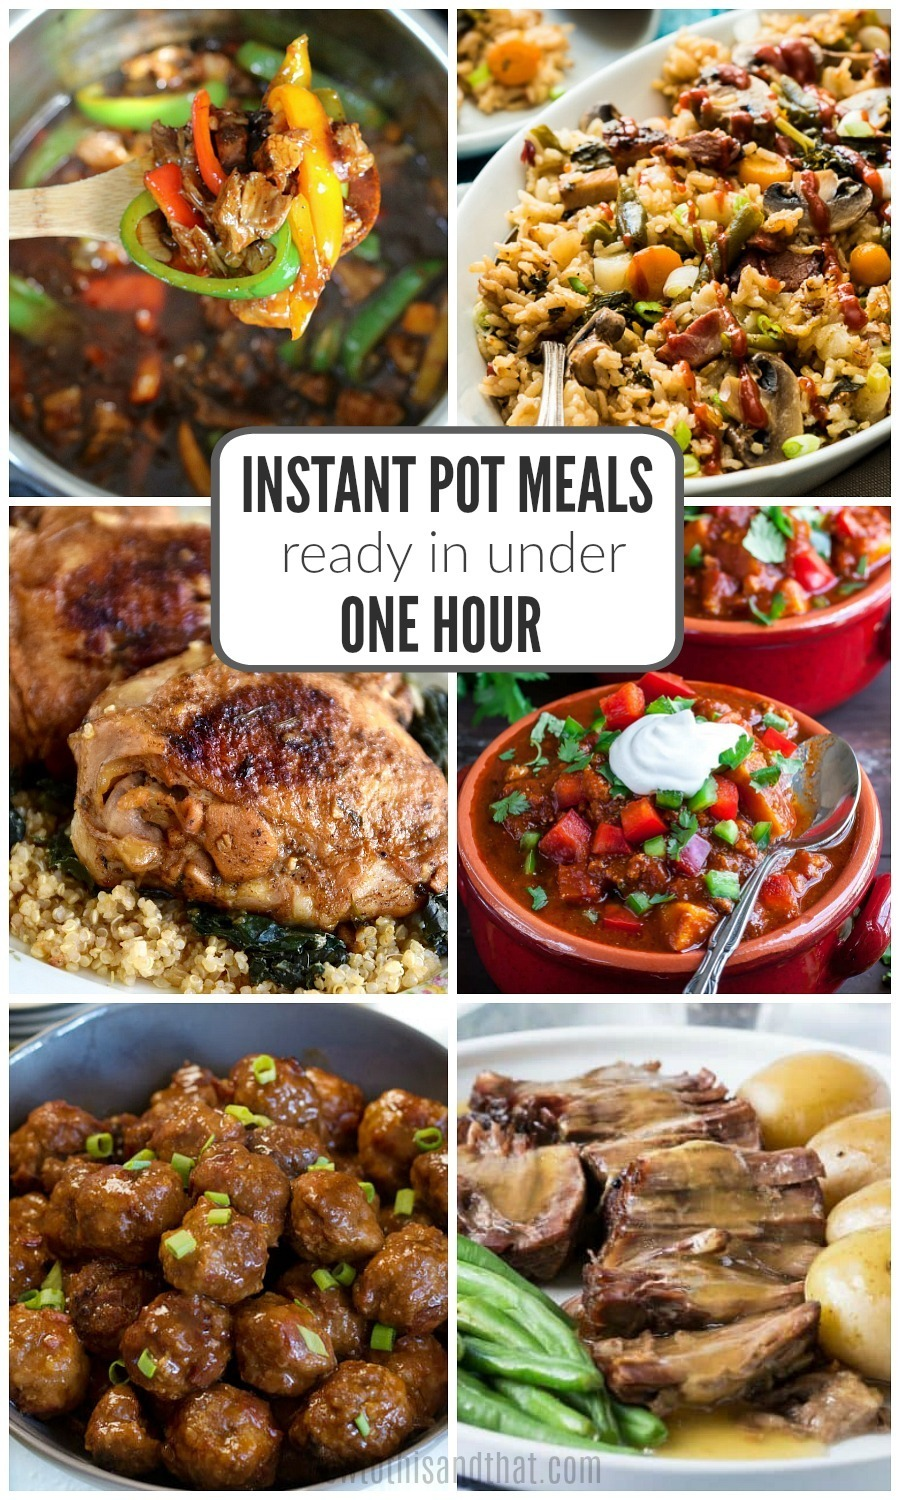 Instant Pot Recipes Ready in Under 1 Hour